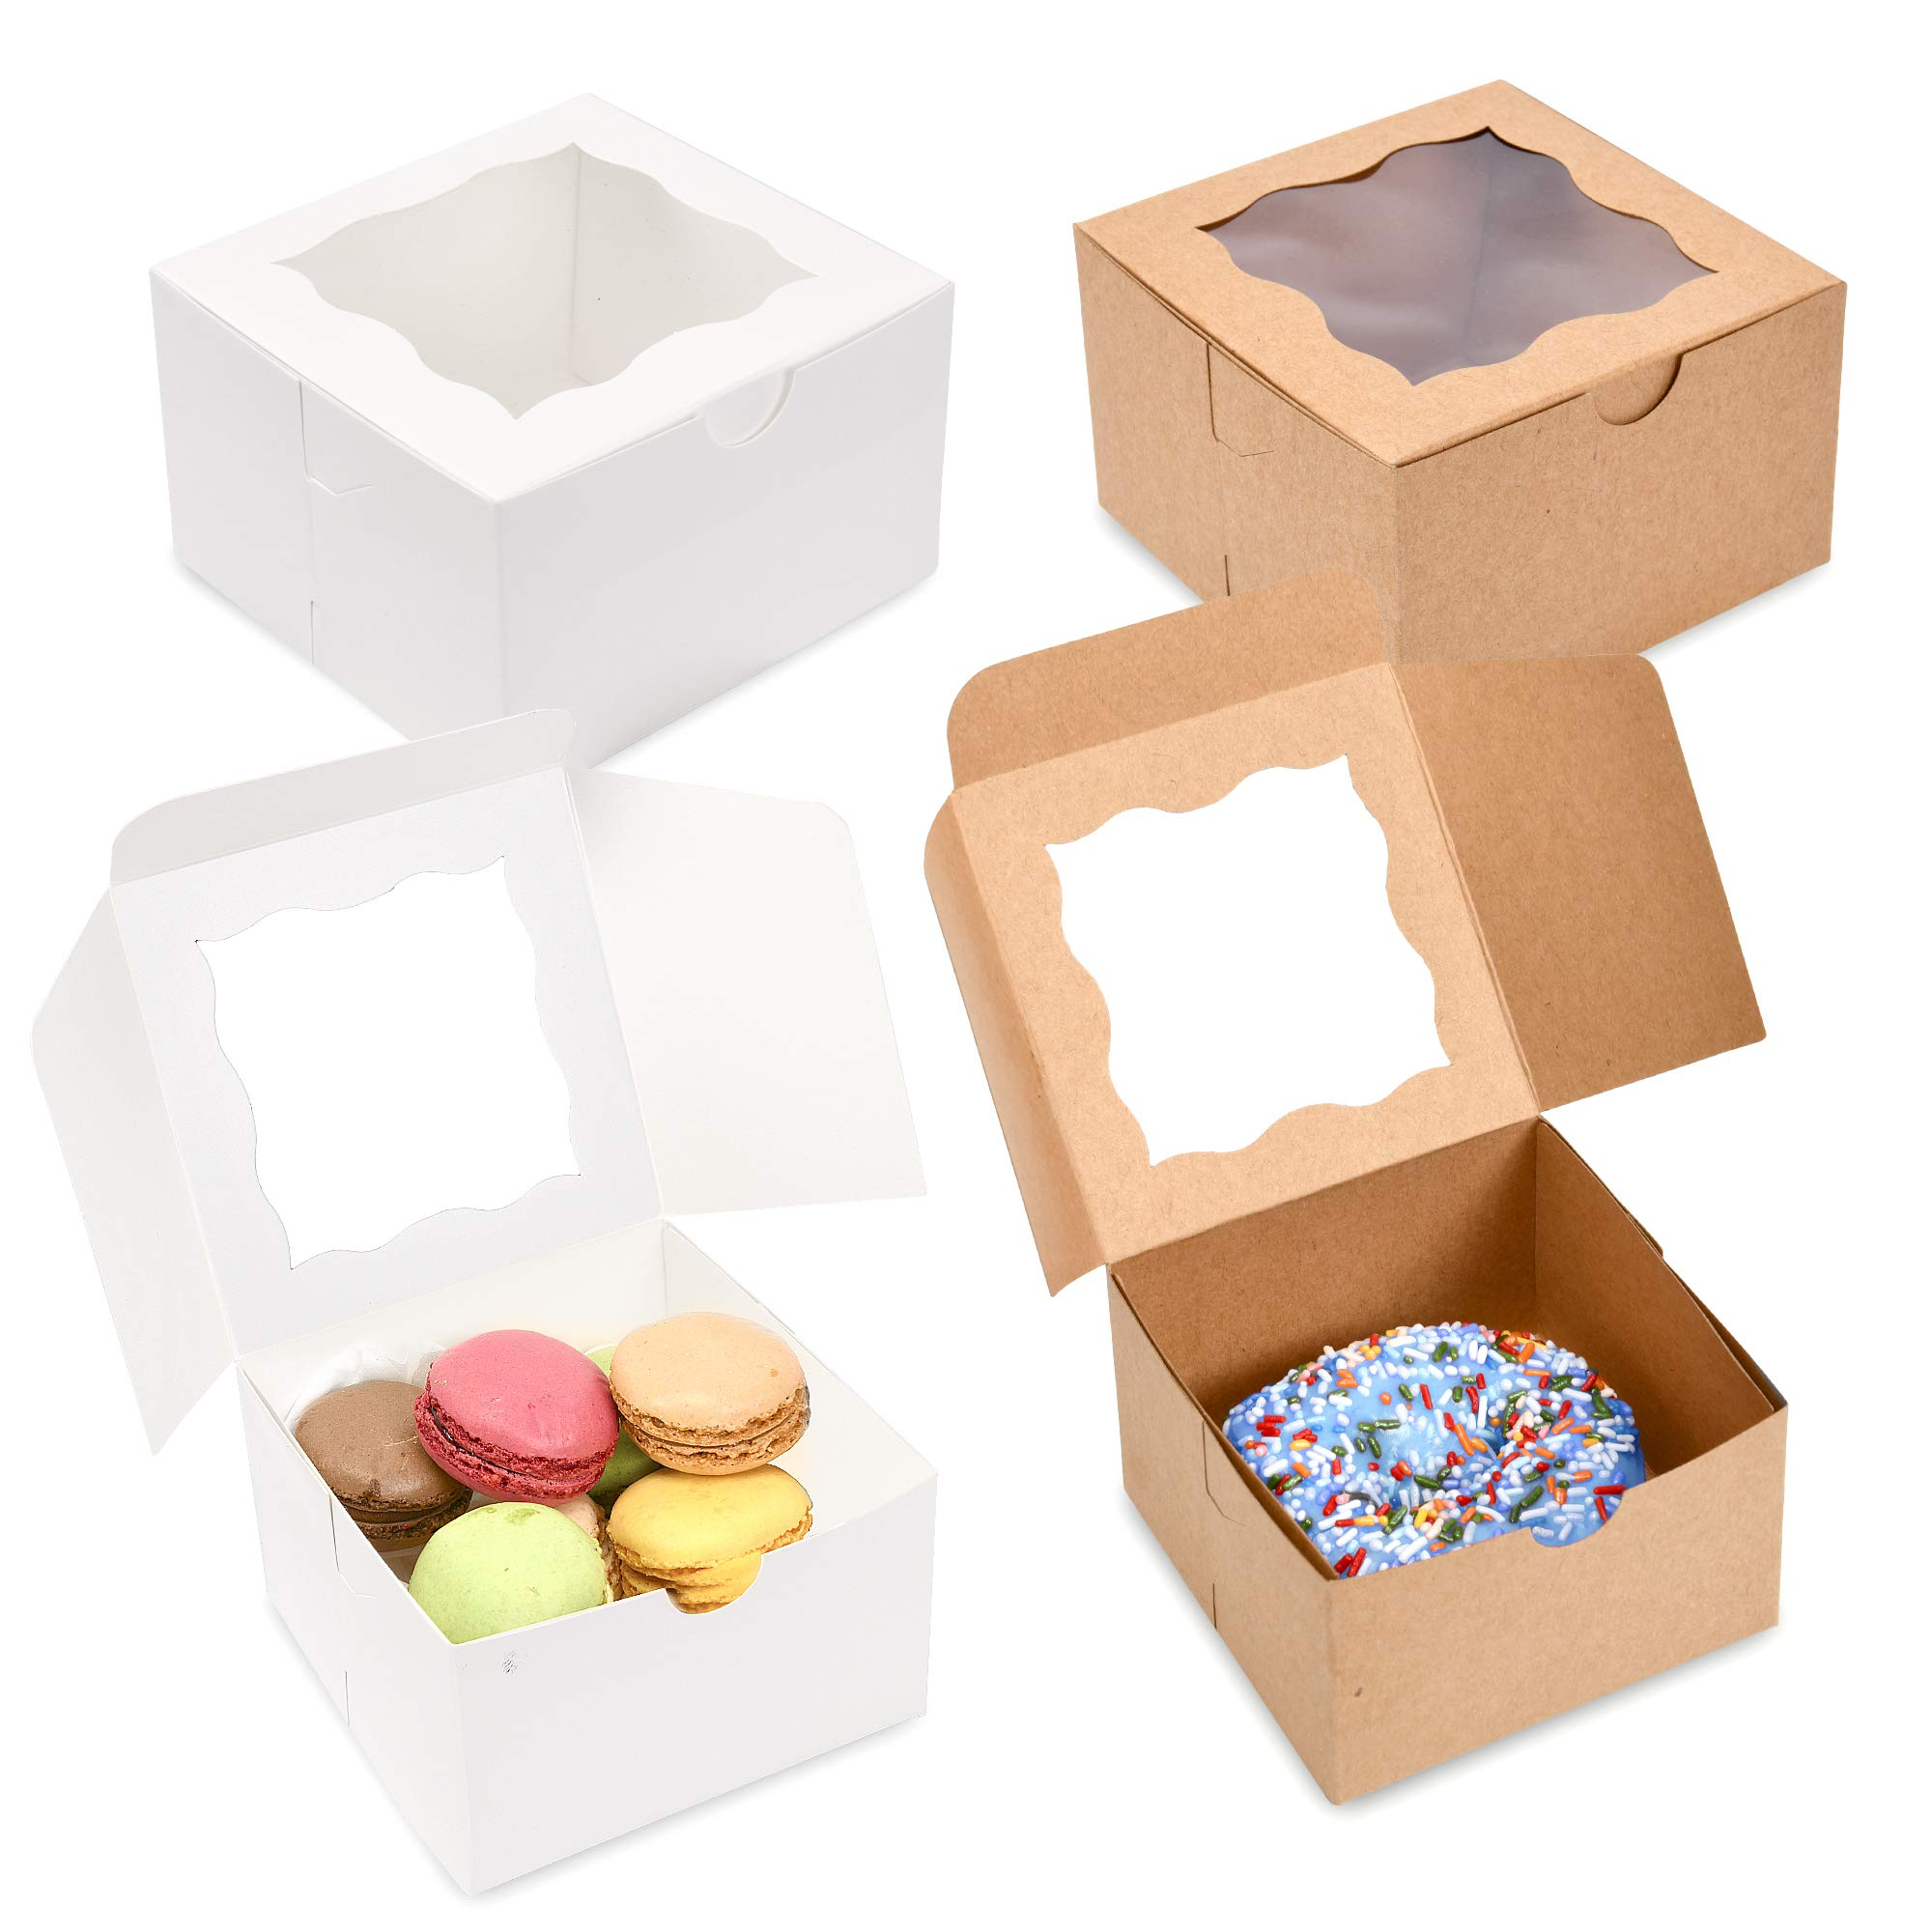 {Pack of 50} White Bakery Boxes with Window 4x4x2.5'' Cute Cardboard Gift Packaging Containers for Cookies, Cupcakes, Small Desserts, Pastry, Wedding Cake, Baby Showers, Donuts, Treats, Party Favors! by Surf City Supplies